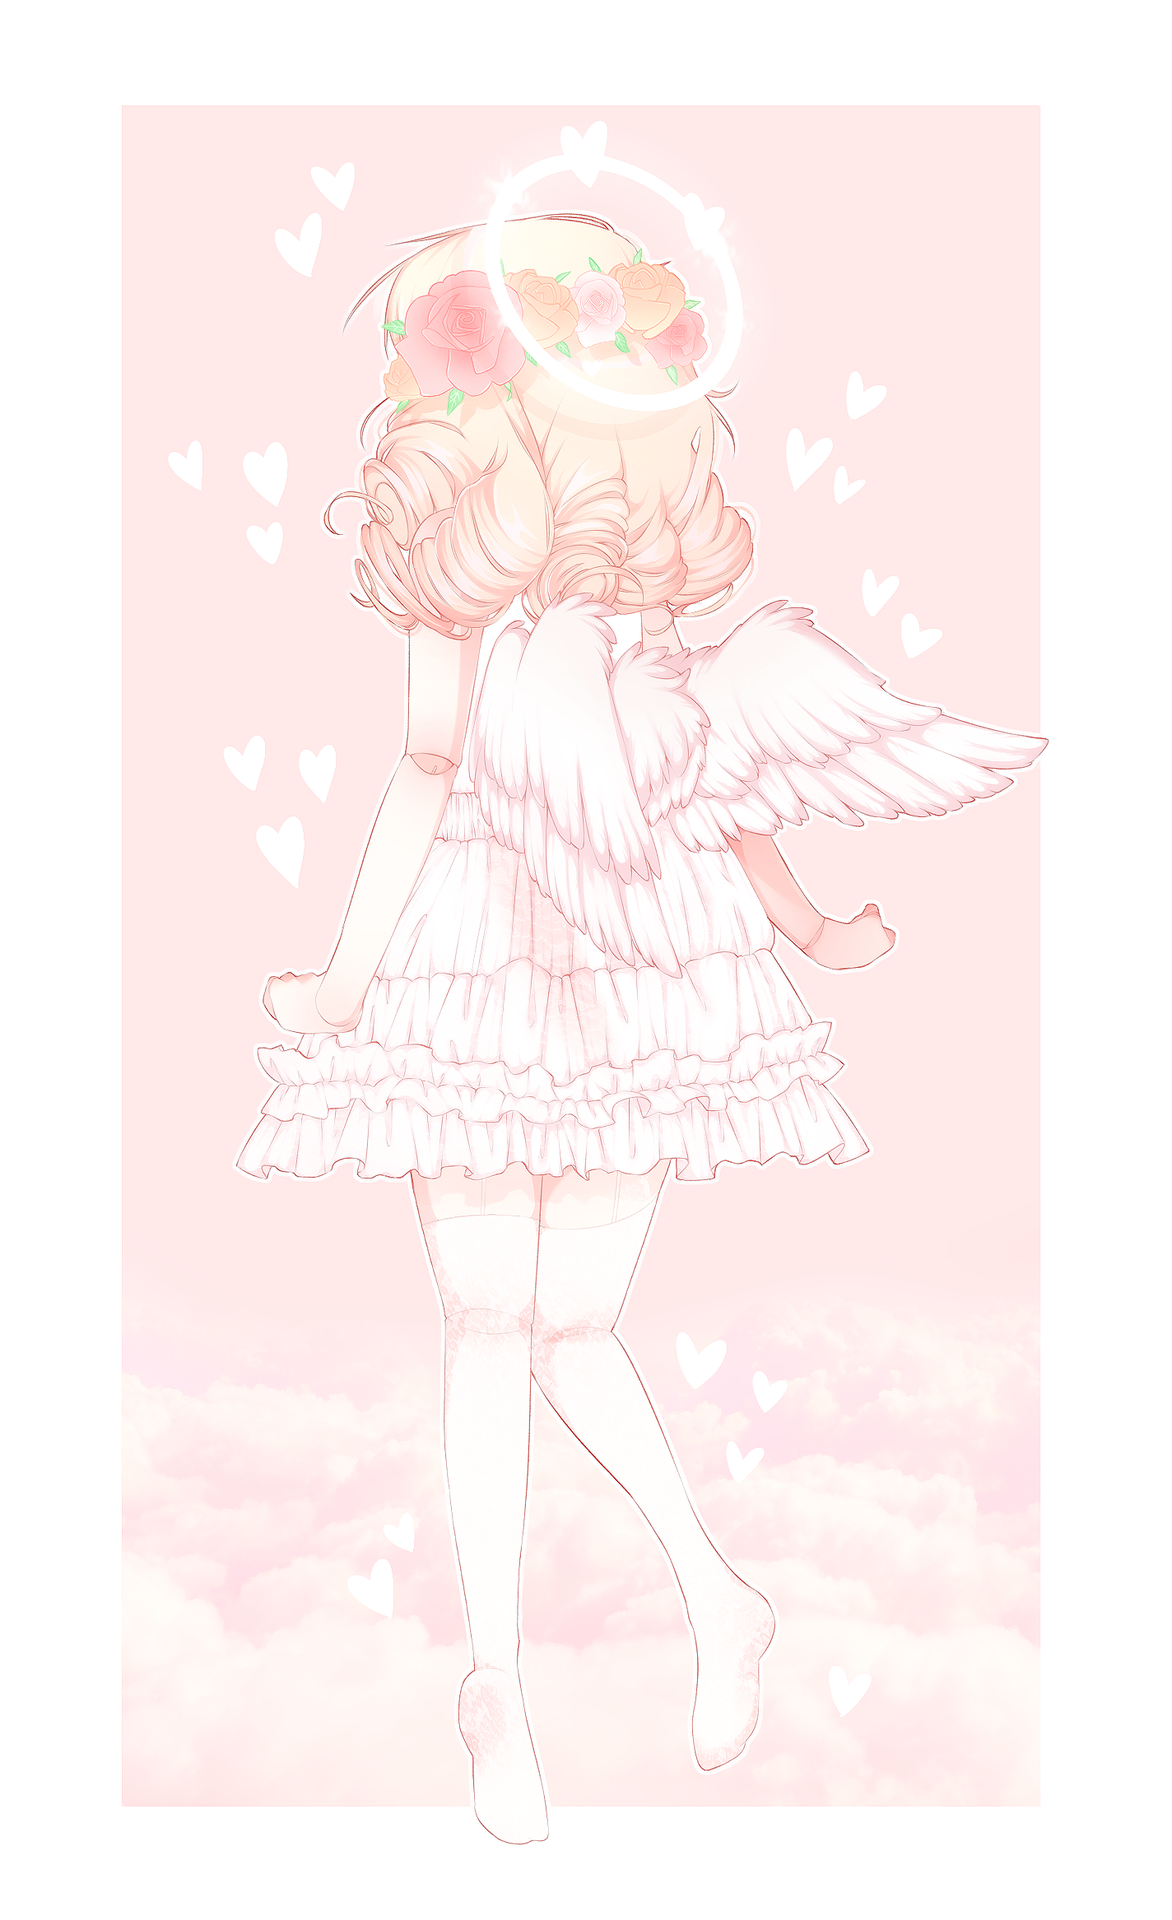 Yeagart Sweet Angel Angelic Aesthetic Cute Kawaii Girly Pink Soft Lovely Cute Anime Chibi Aesthetic Anime Anime Wallpaper